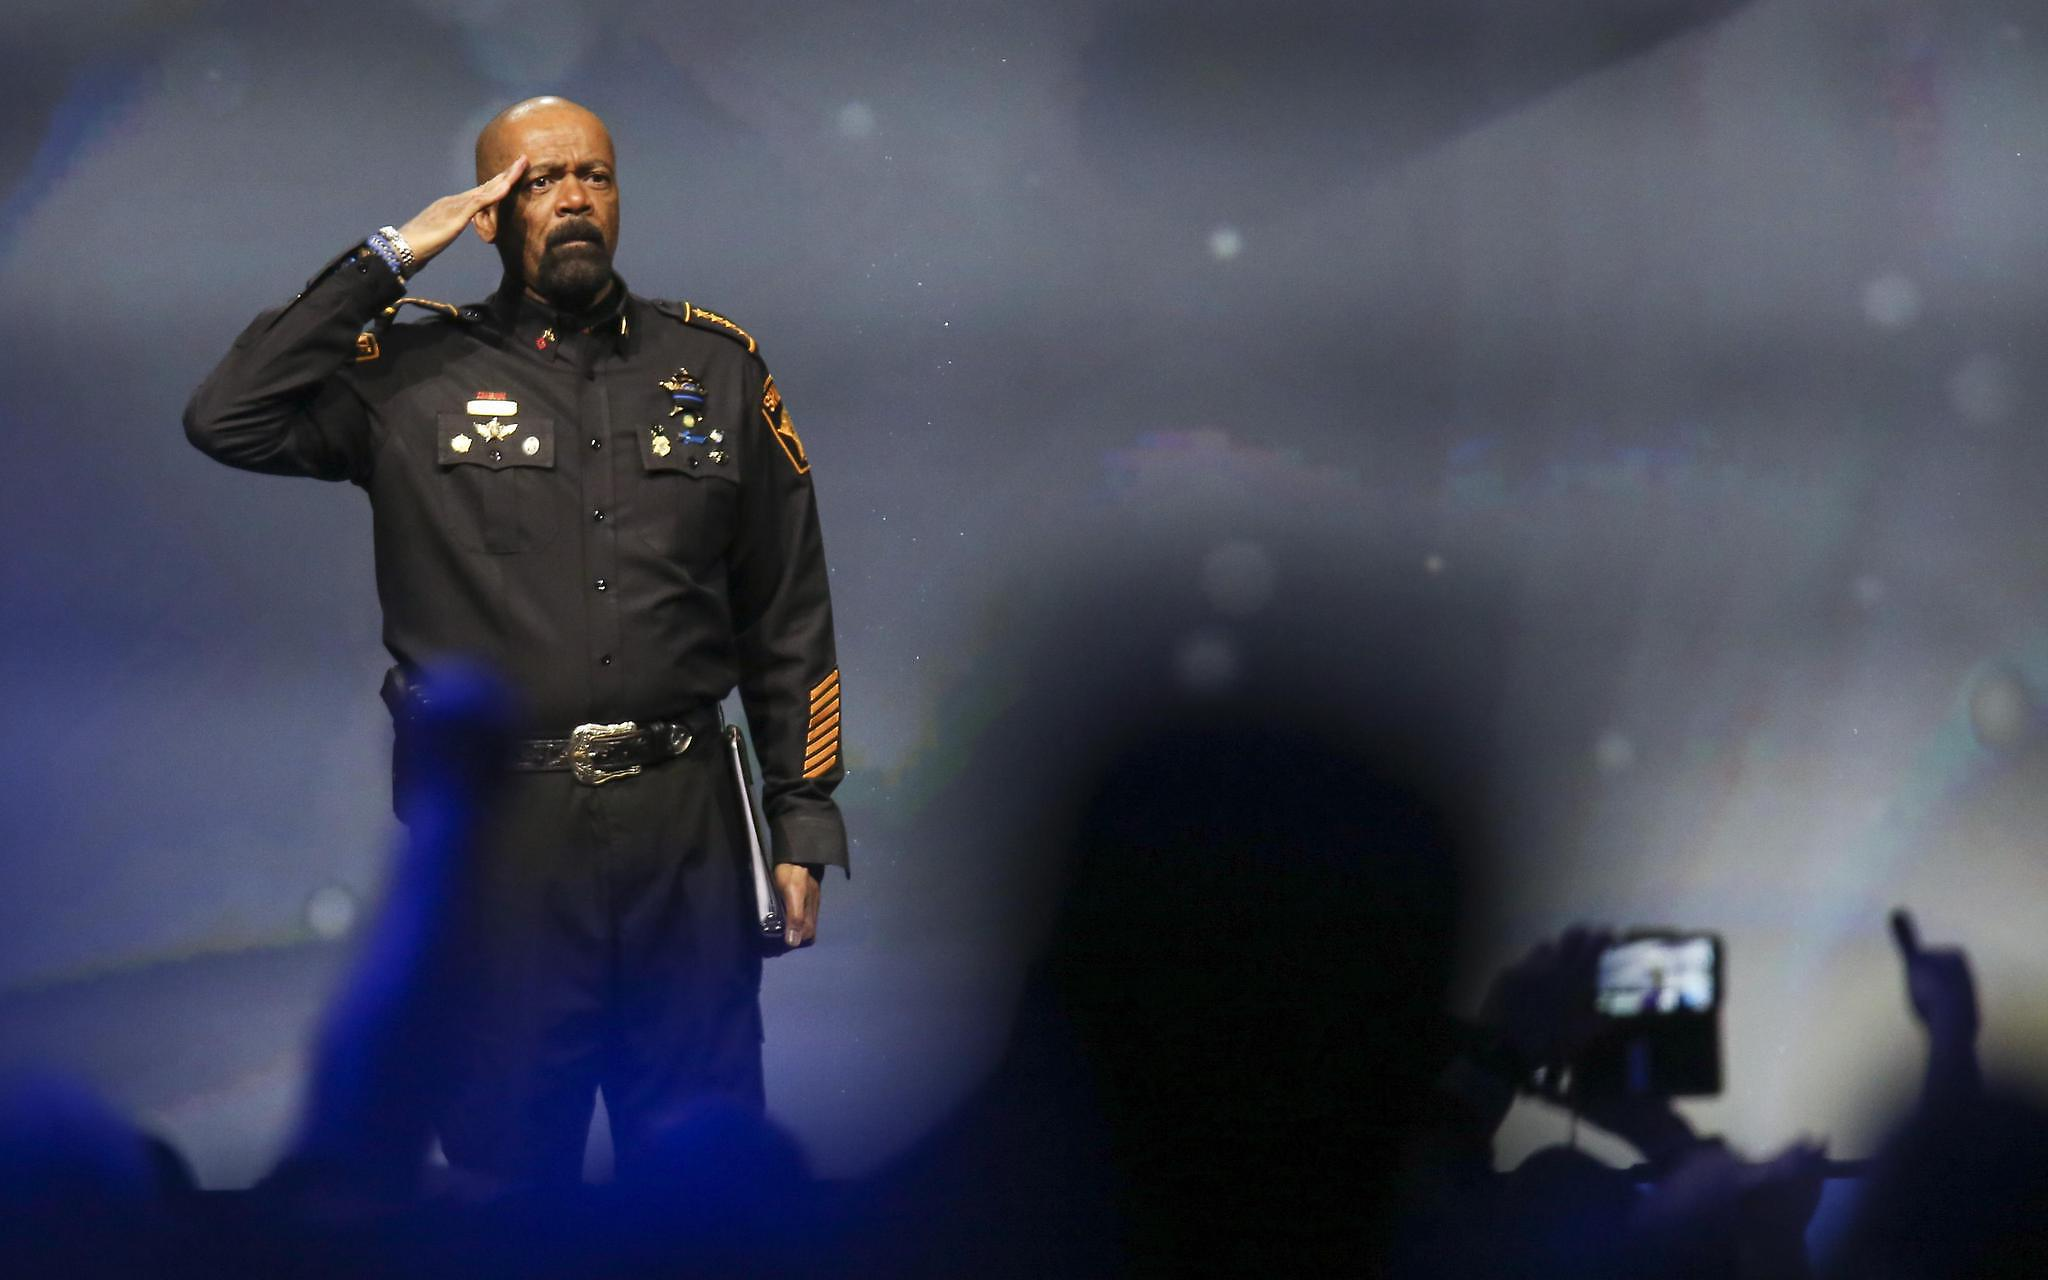 Milwaukee County Sheriff David Clarke spoke at the NRA-ILA Leadership Forum in Louisville, Ky., in 2016. (USA Today Network)